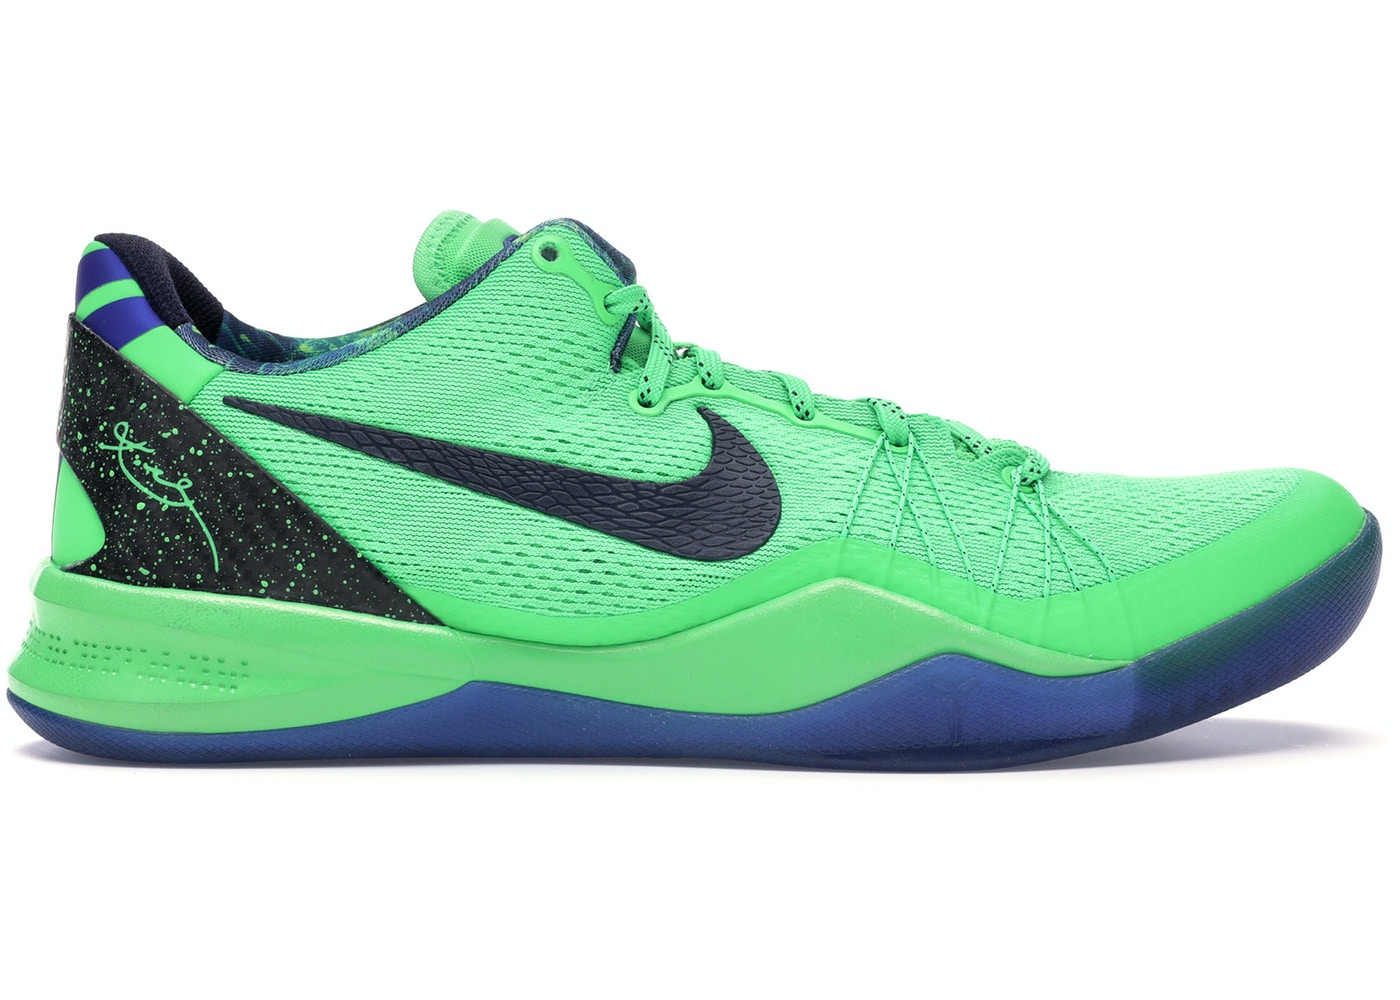 reputable site 5aae8 9eb0d Kobe 8 Elite Supehero - 586156-300